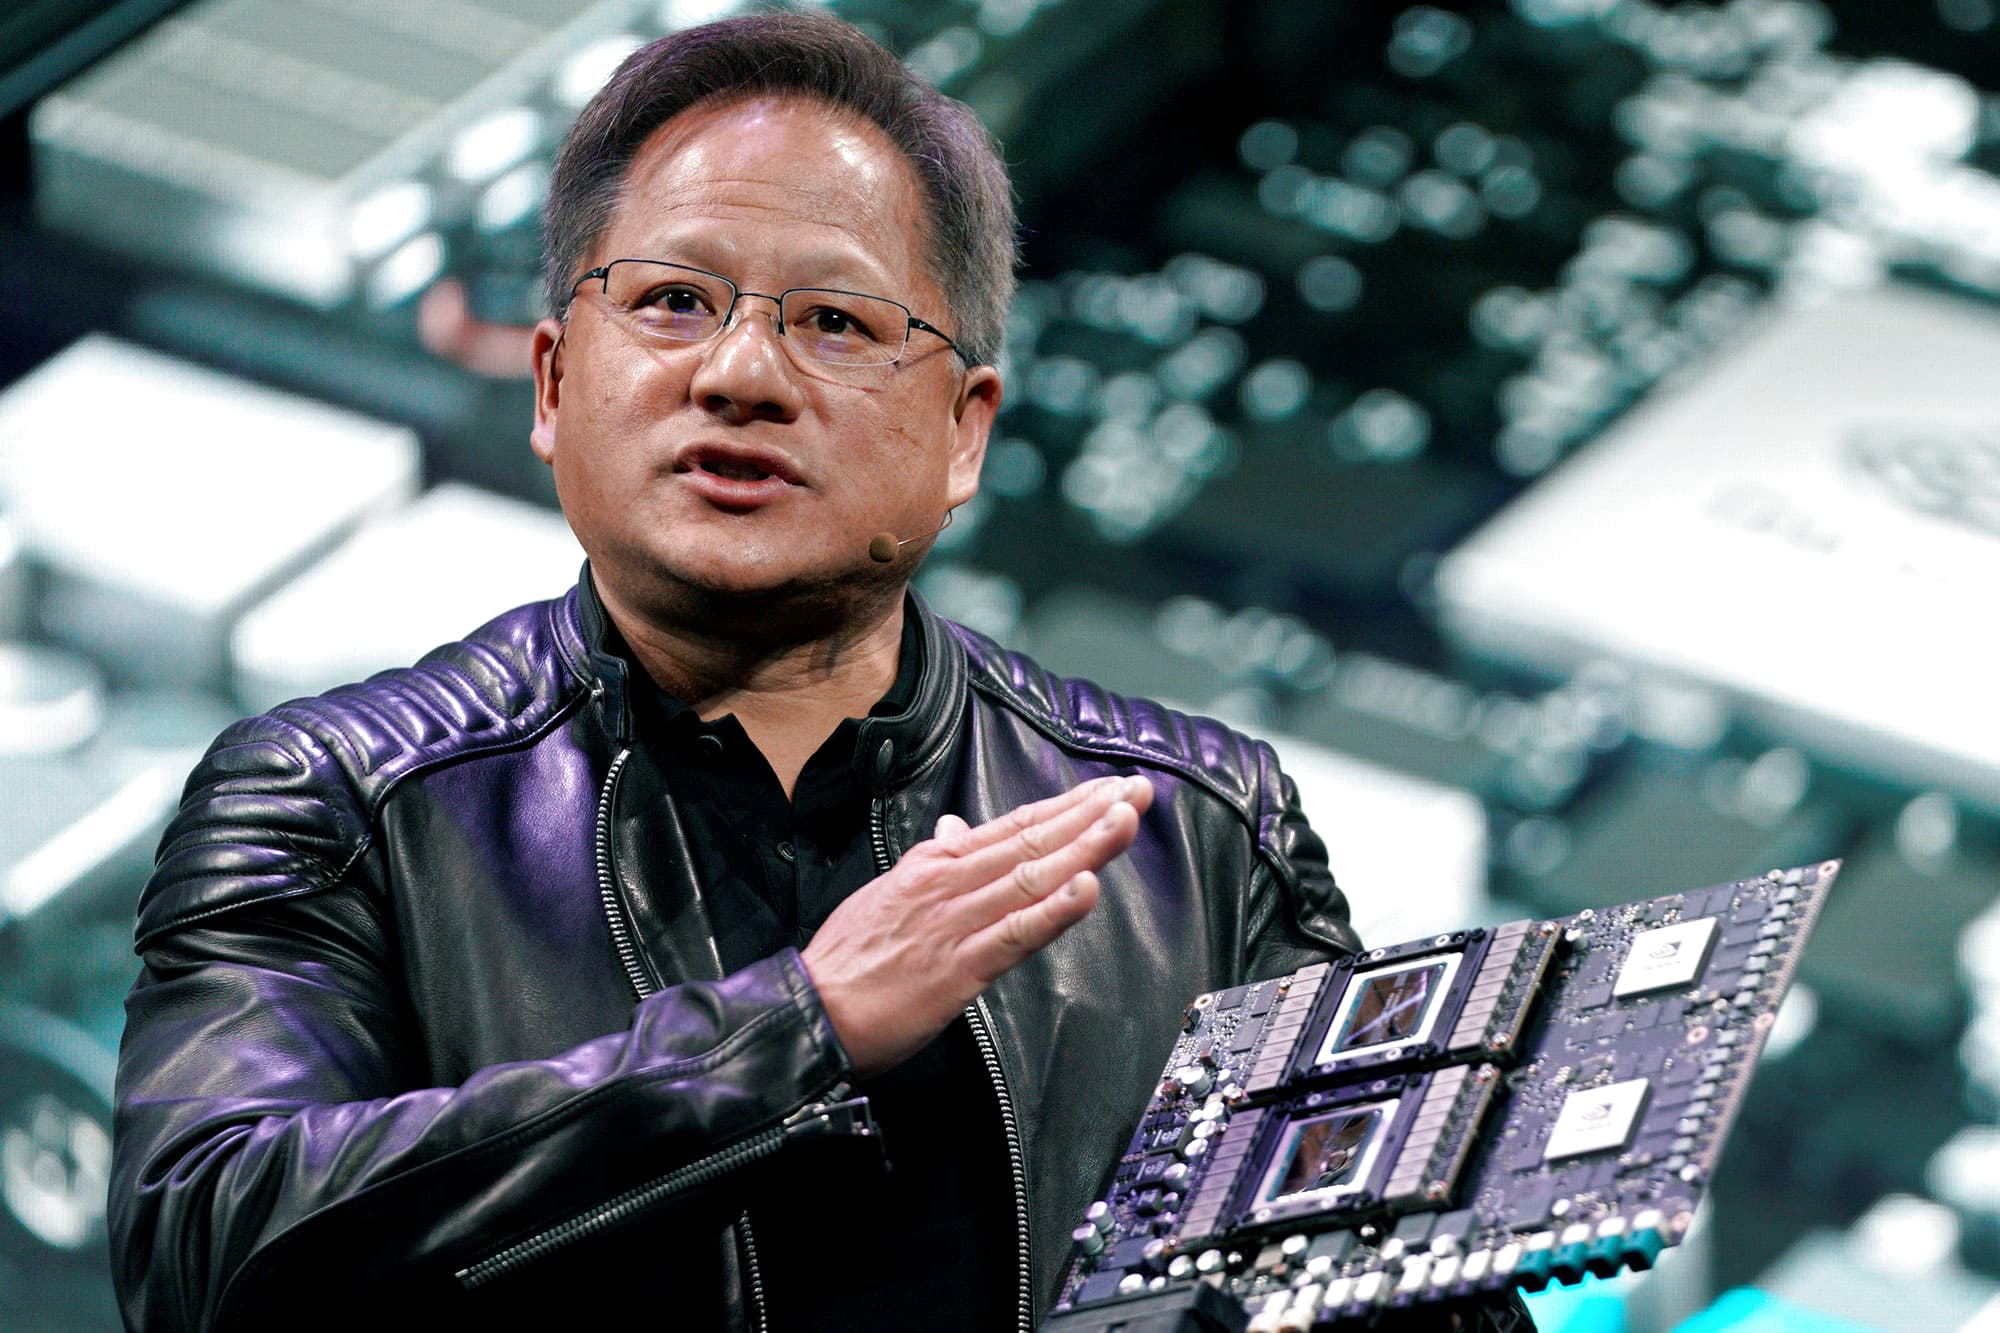 Nvidia to buy Arm Holdings from SoftBank for $40 billion – CNBC